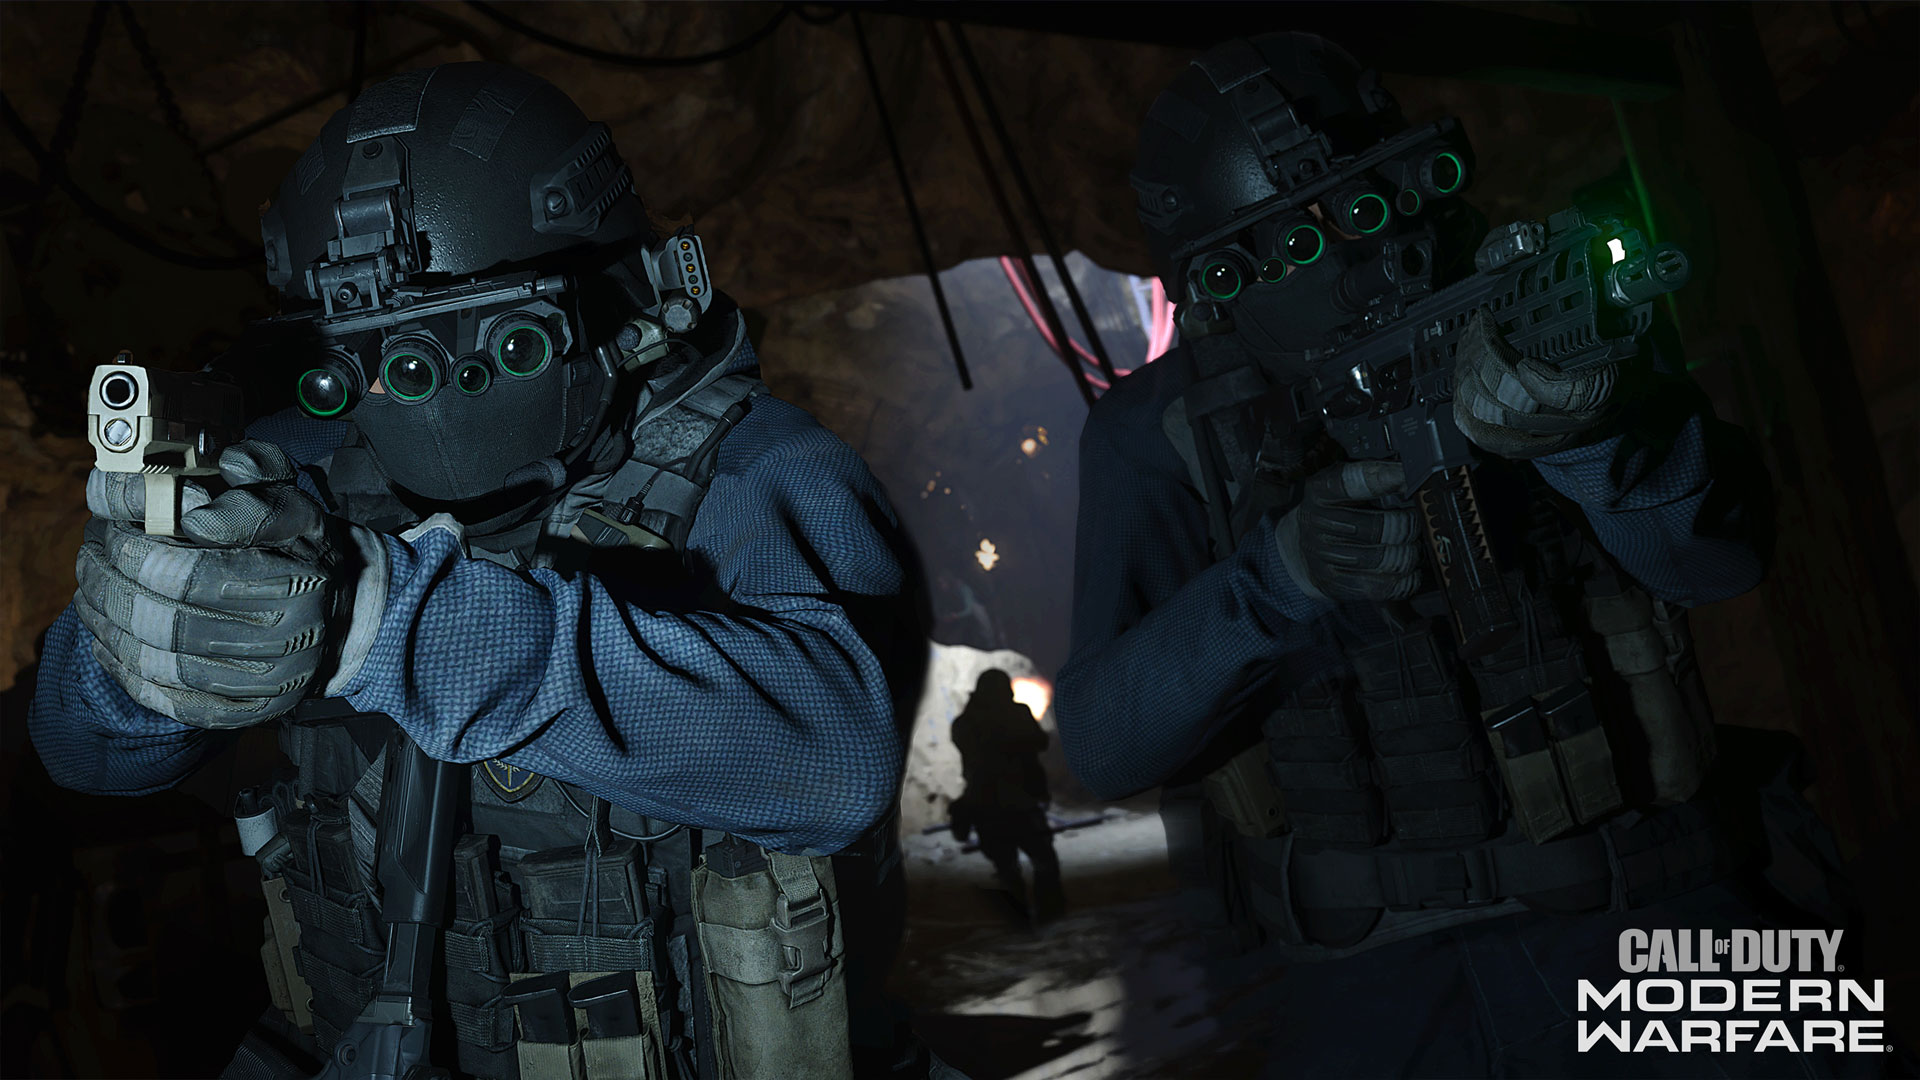 Get Ready For Call Of Duty Modern Warfare Pc Launch Trailer And Pc Preload Information Drops Today